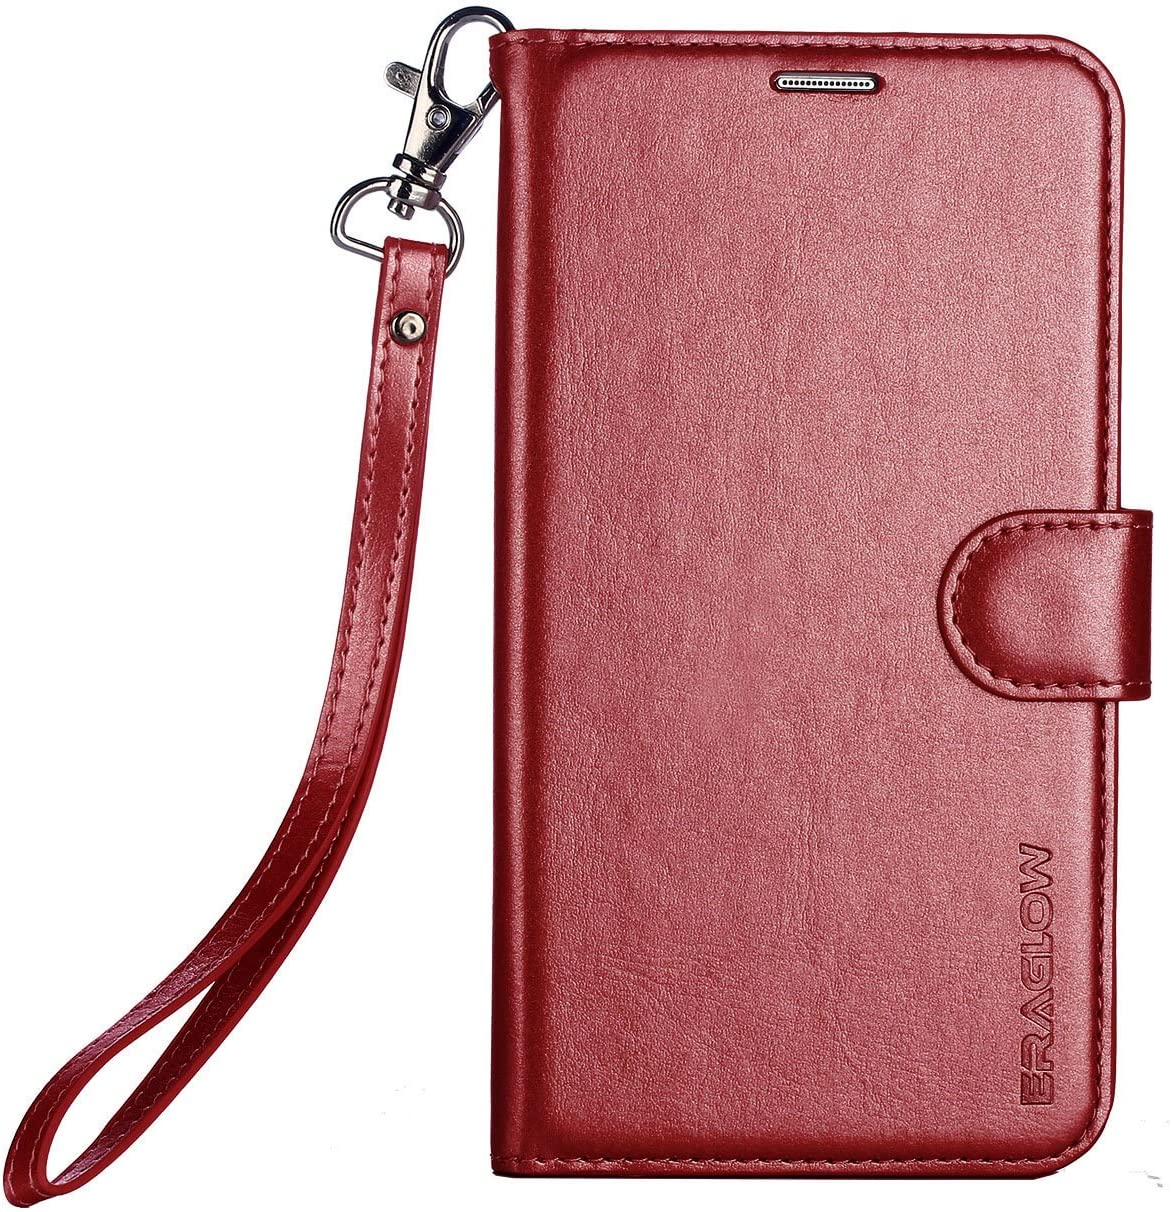 Galaxy S9 Wallet Case, Galaxy S9 Case, ERAGLOW Premium PU Leather Wallet Flip Protective Case Cover with Card Slots and Kickstand for Samsung Galaxy S9 (Wine Red)